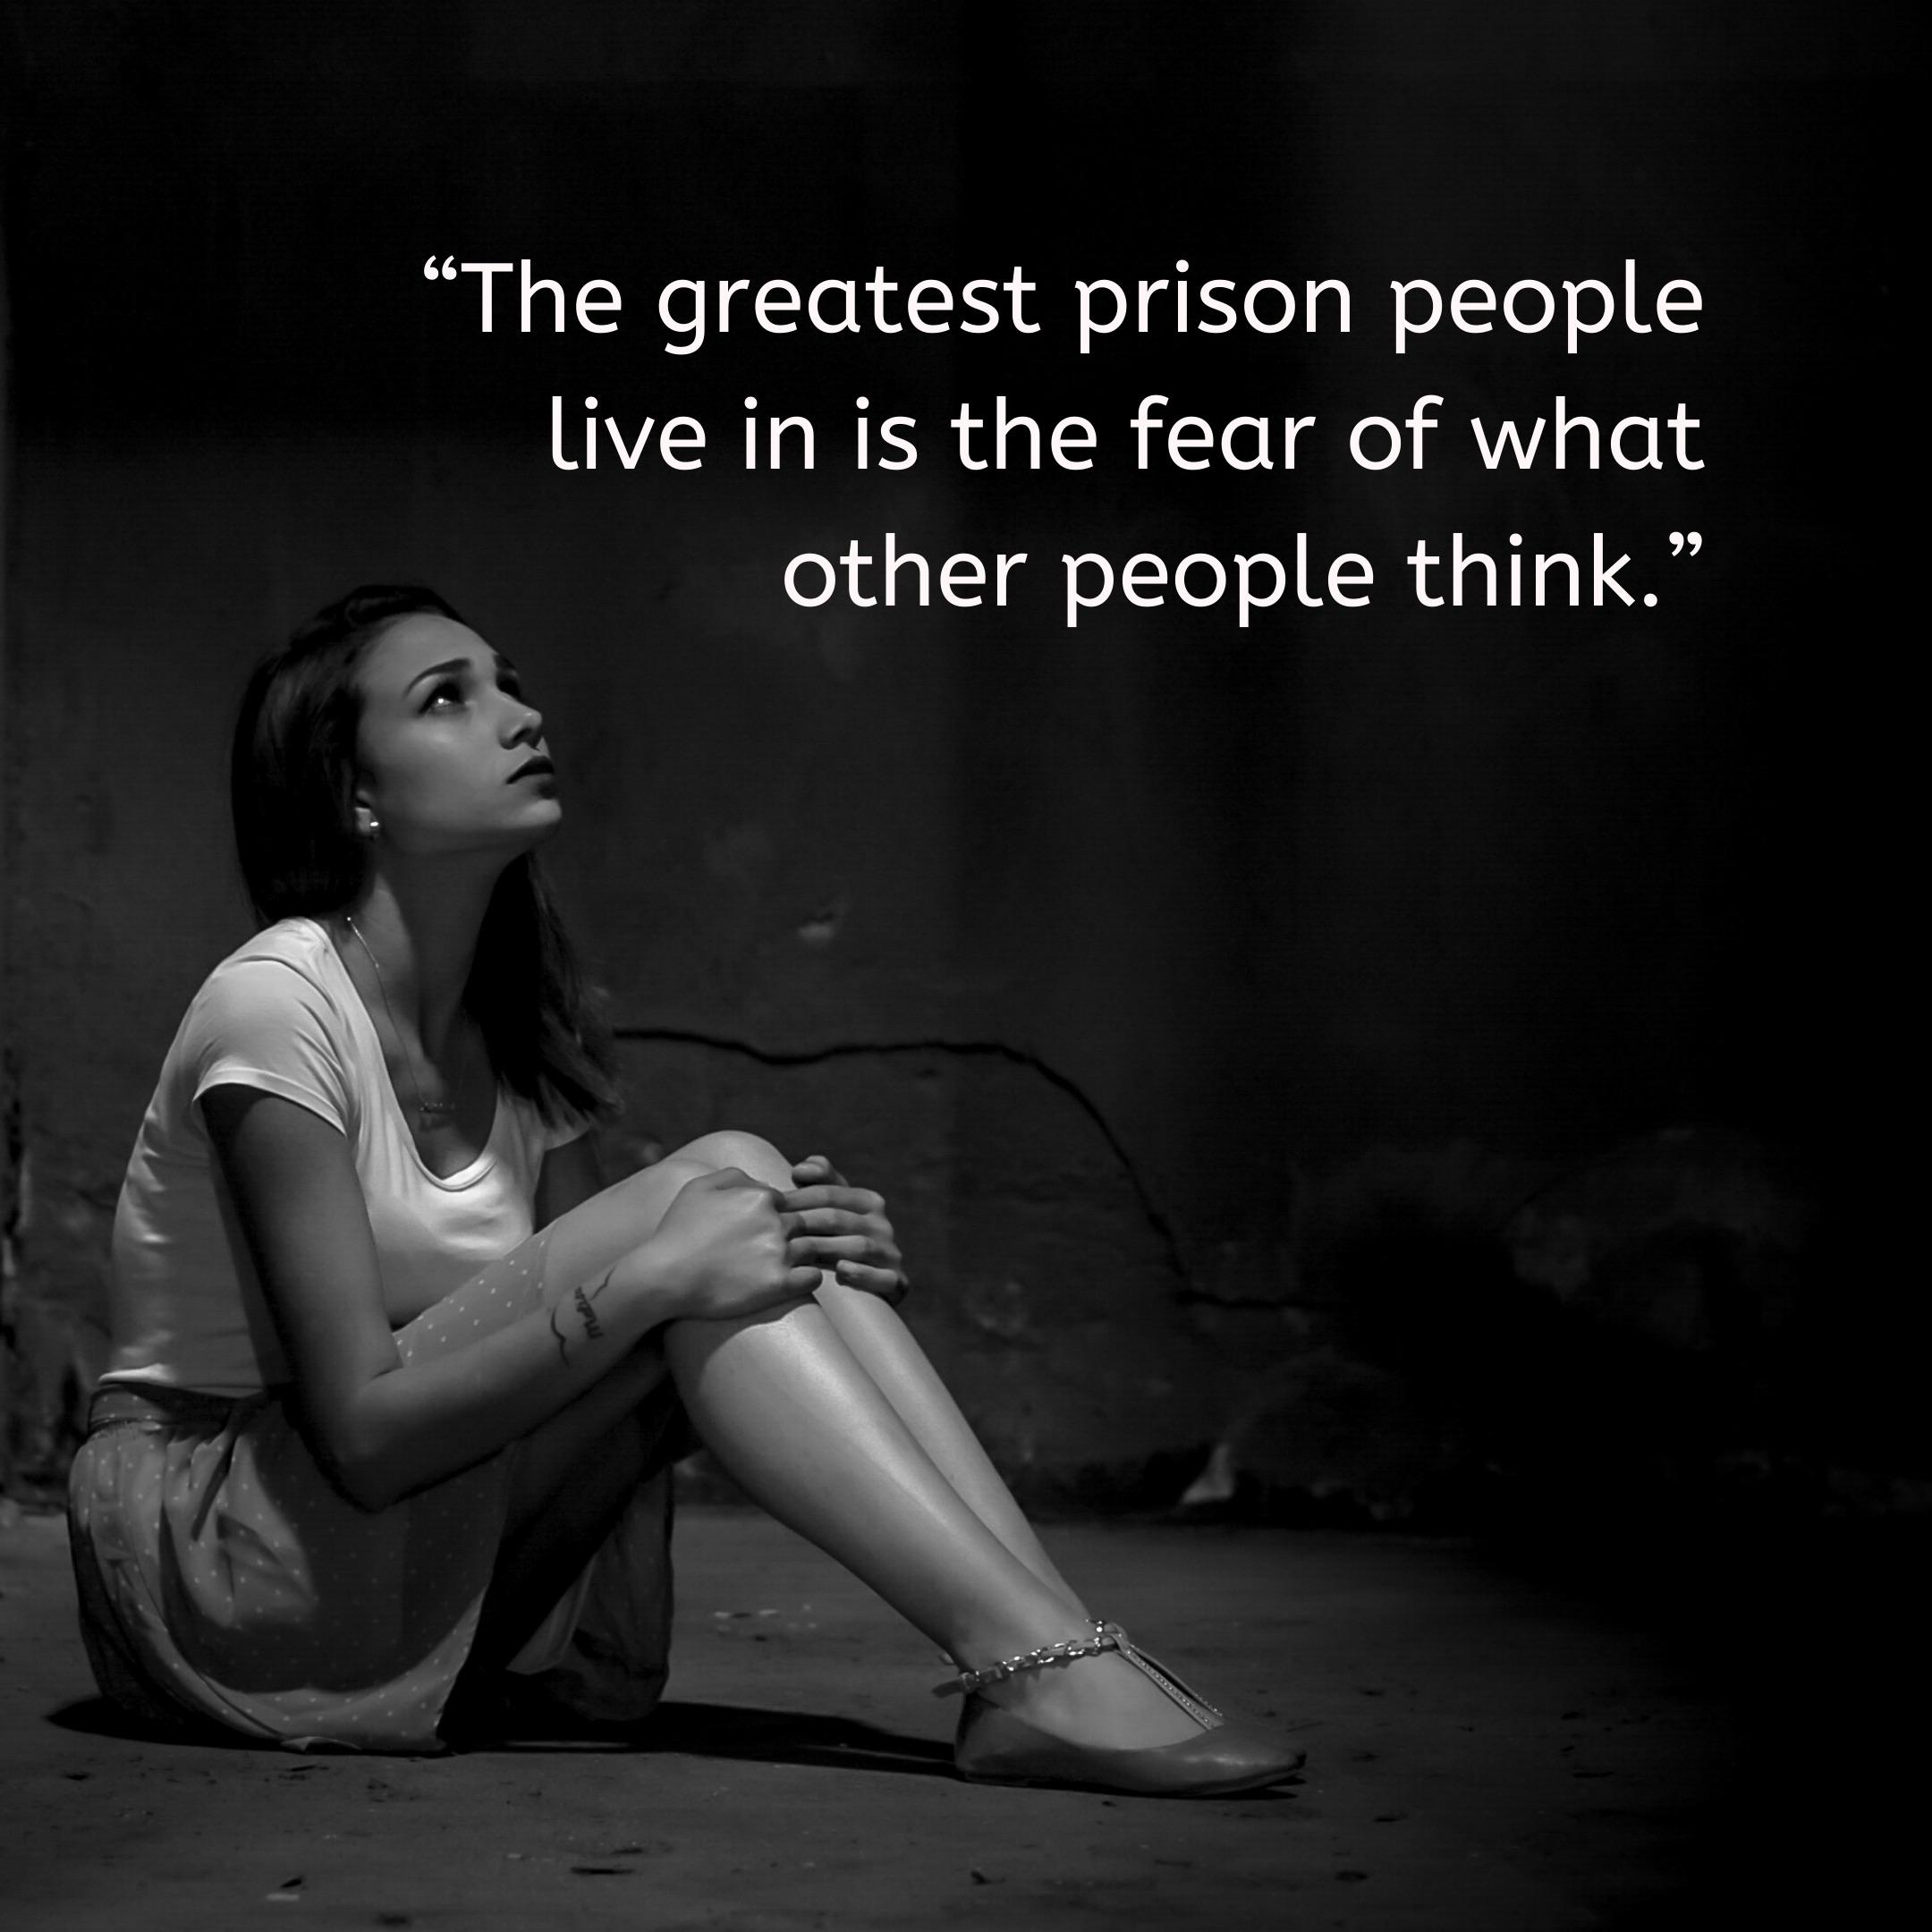 [image] stop caring what people think!